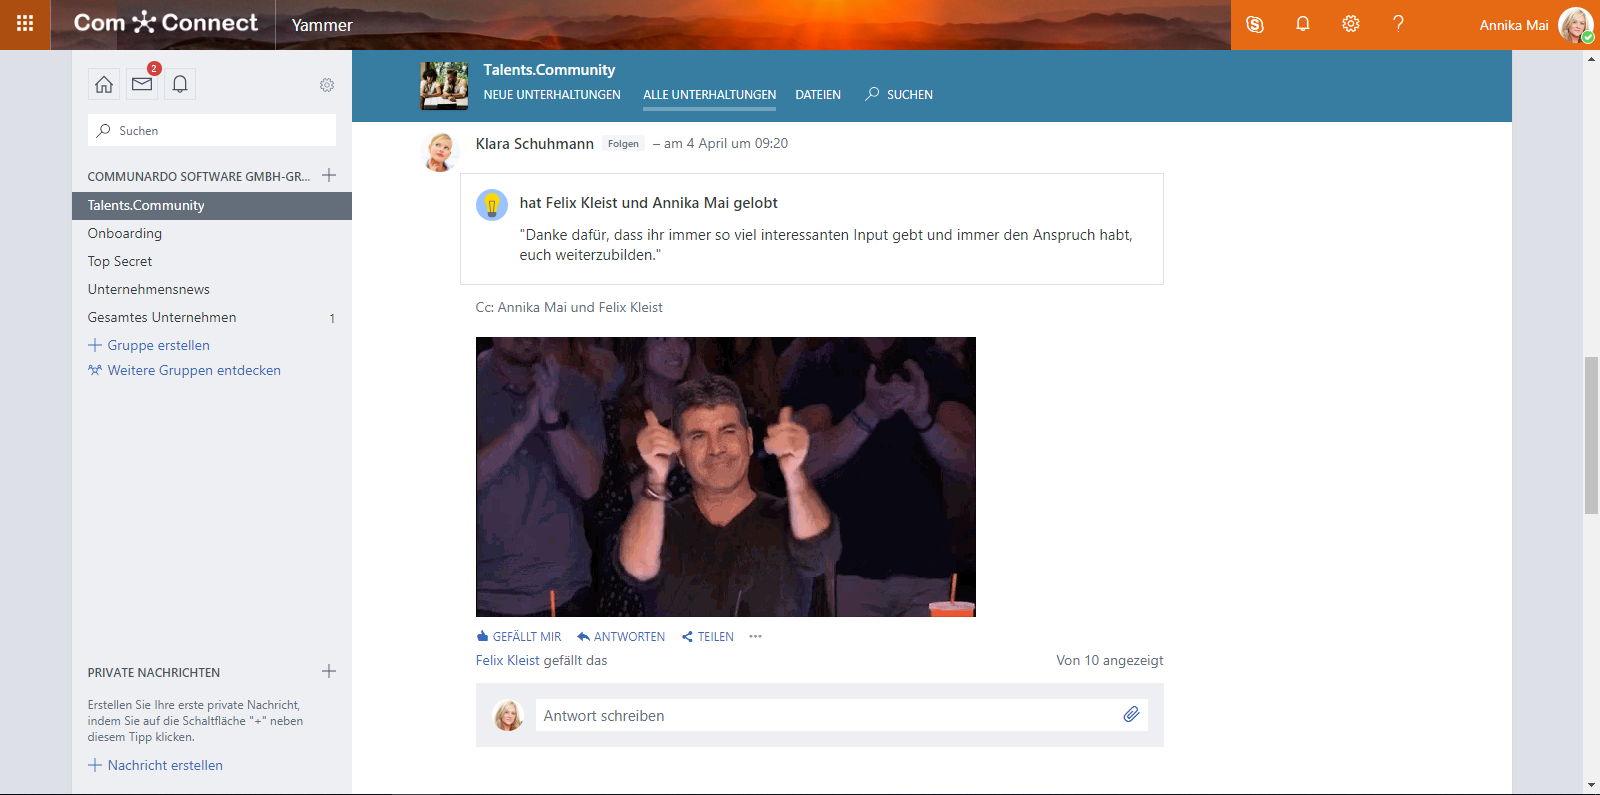 Enterprise Social Network mit Yammer